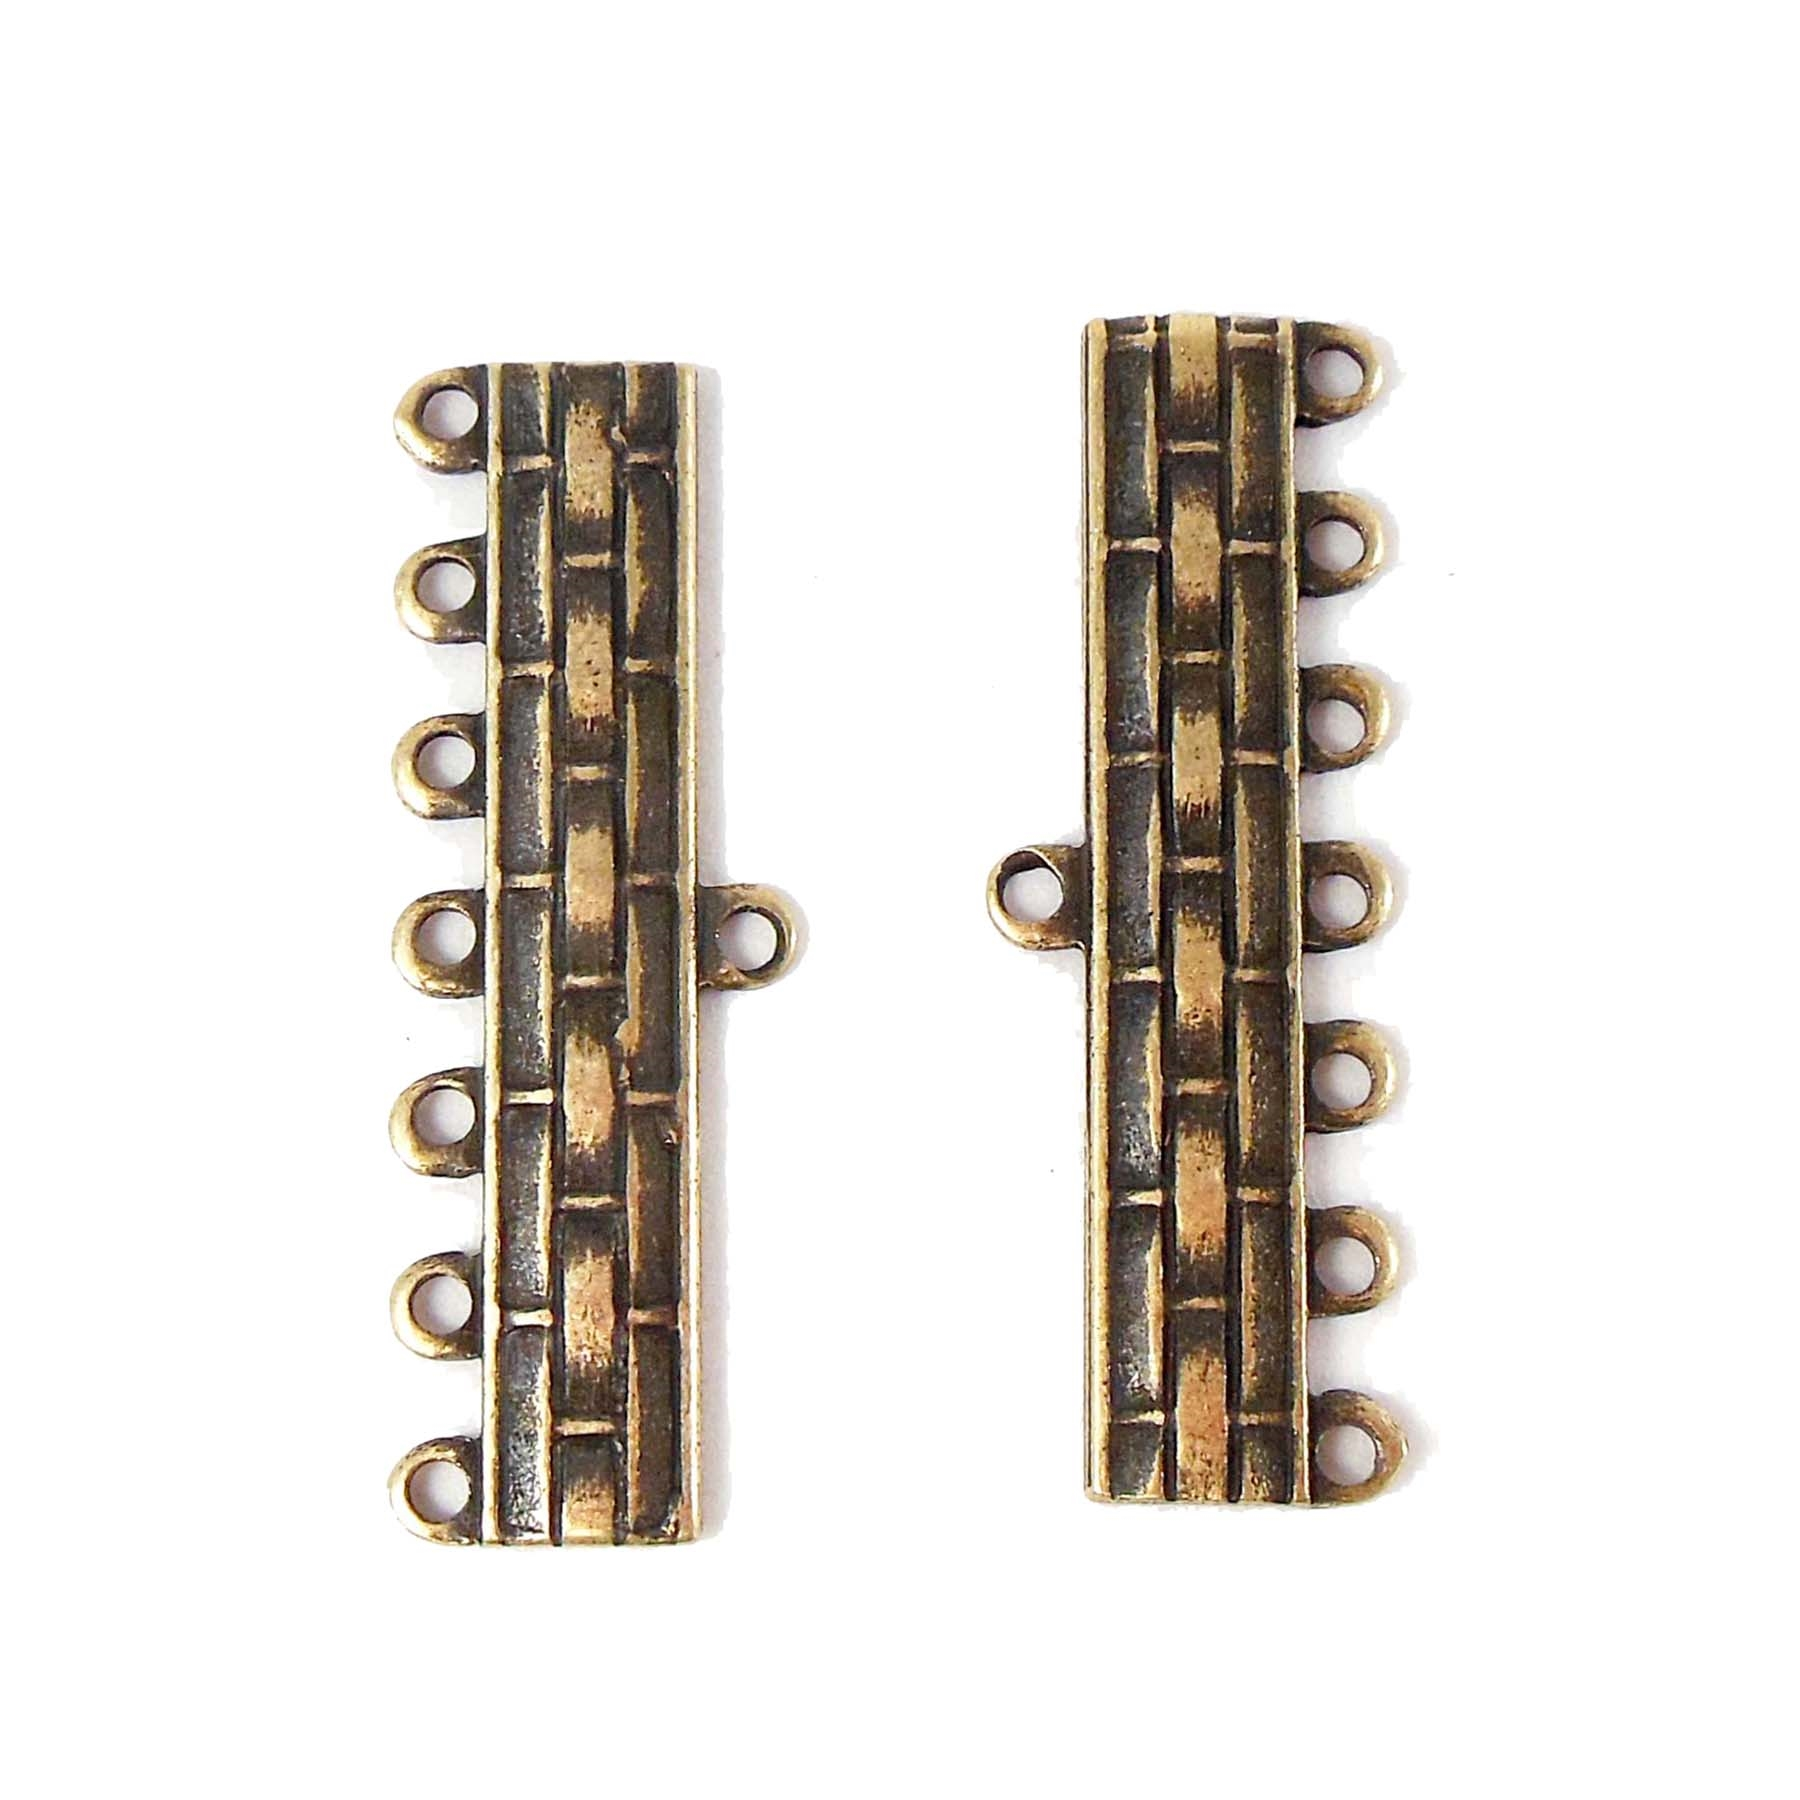 Bracelet Bars, Connectors, 6 Hole Style, 06210, Brass Ox, Brass Stamping, Art Deco, vintage jewellery making supplies, Fancy Bracelet Bar, Necklace Bar, 33mm, Us Made, Nickel Free, Jewelry Findings, Vintage Supplies, Jewelry Supplies, B'sue Boutiques,